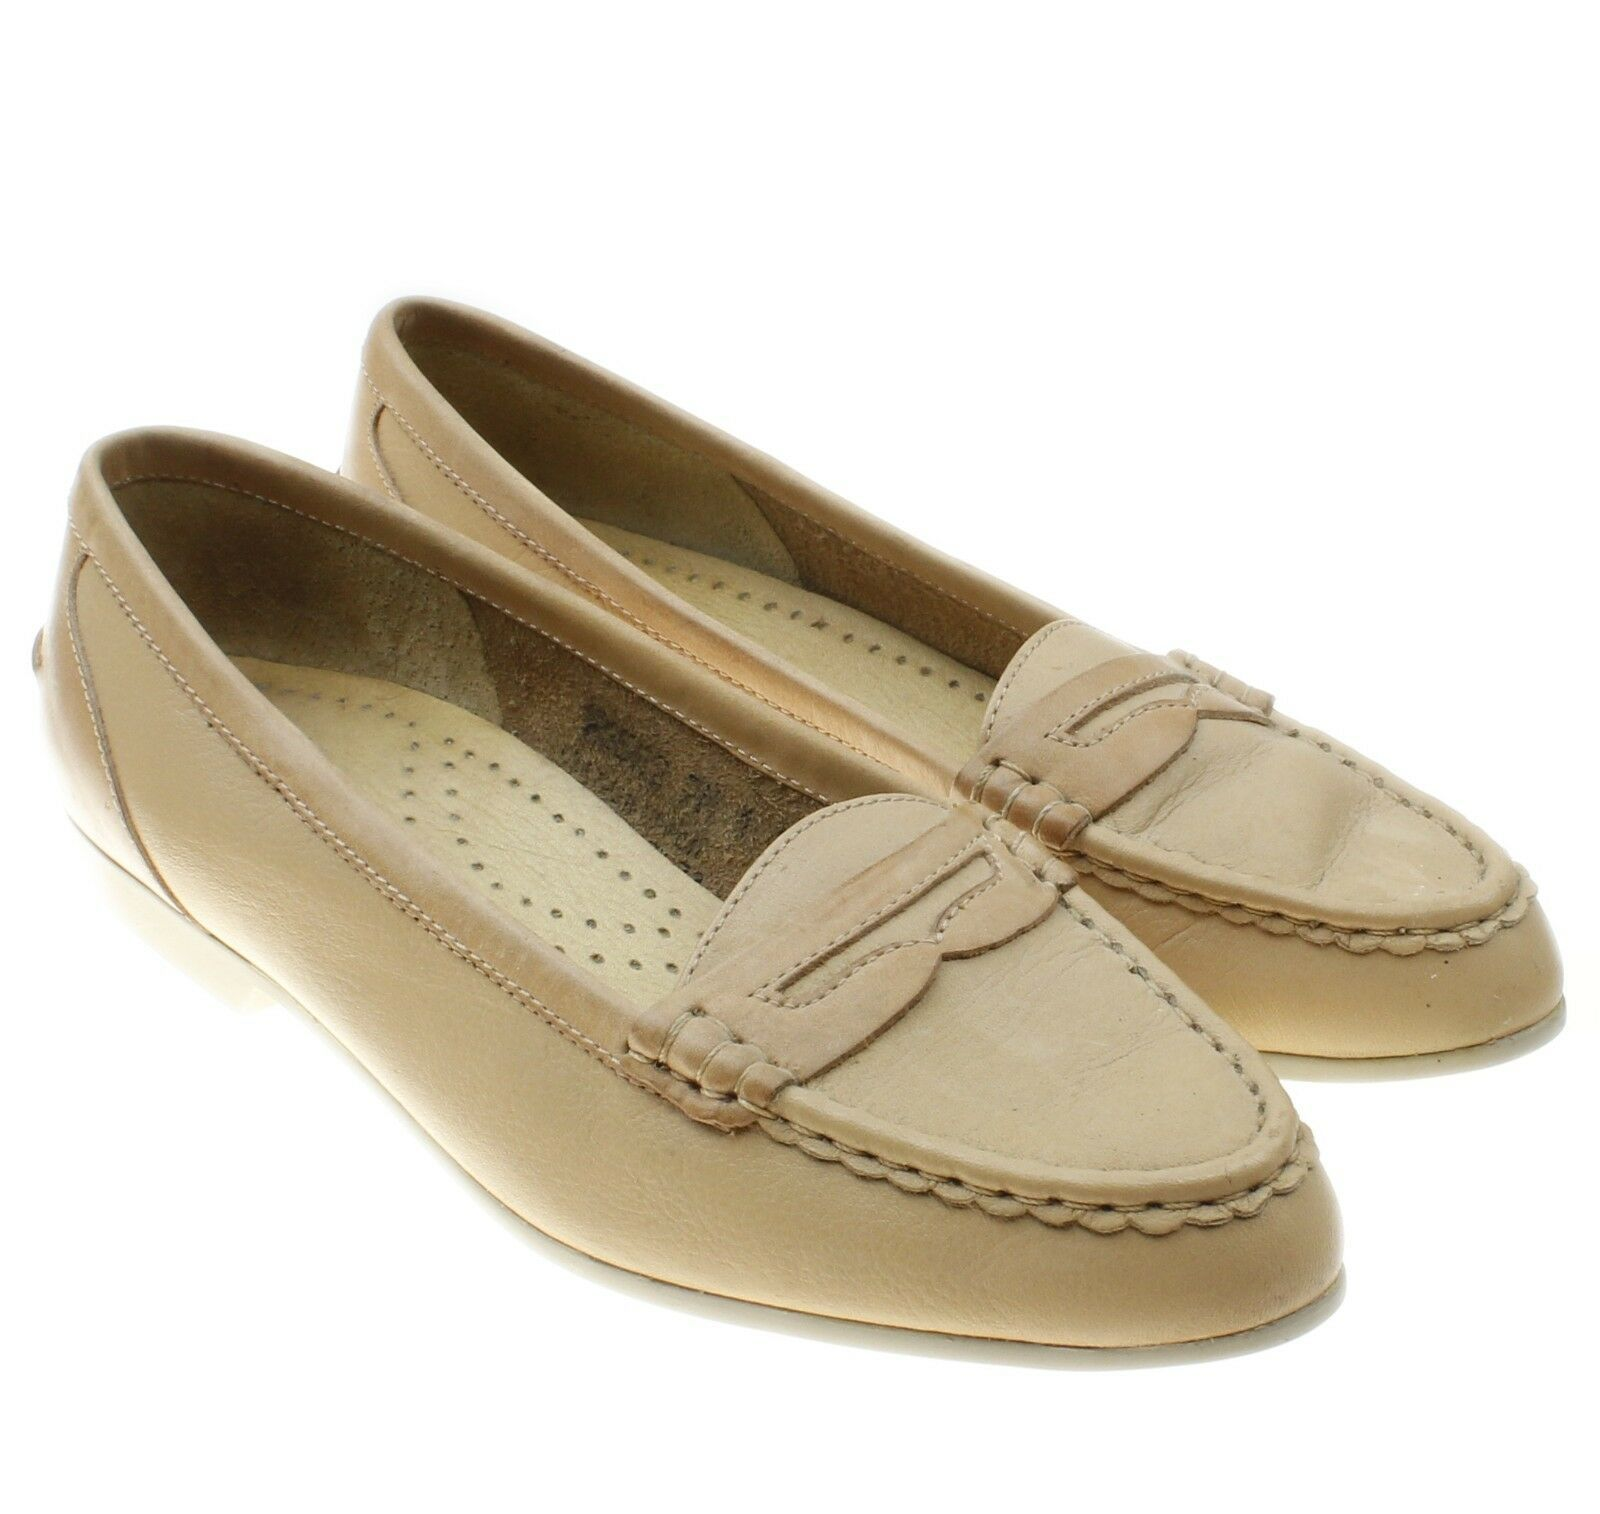 215d9e08613 Rockport Beige Leather Slip Ons Penny Loafer Style Flats Shoes Women s Size  7 M -  26.68